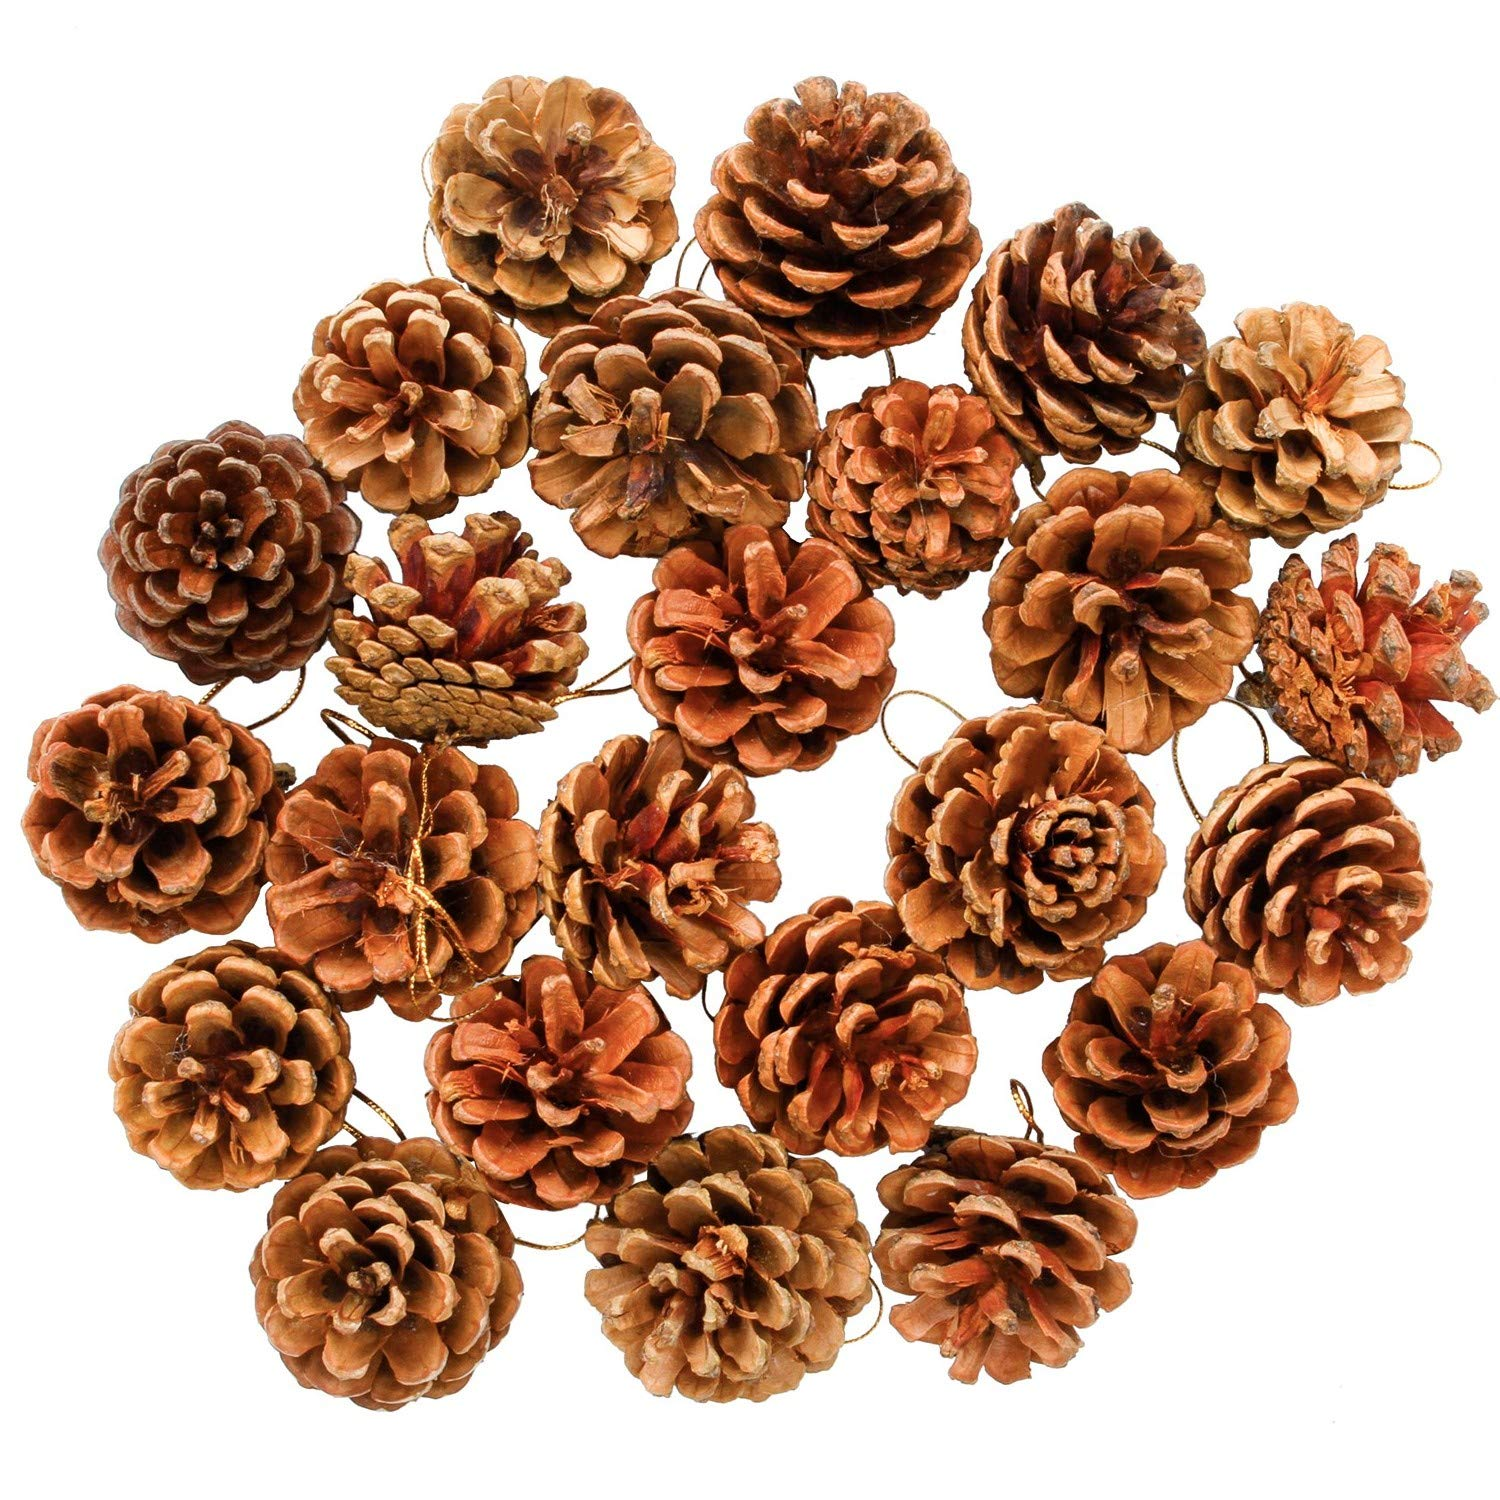 Aneco 24 Pieces Christmas Pine Cones Natural PineCones Ornament with String Pendant Crafts for Gift Tag Tree Party Hanging Decoration